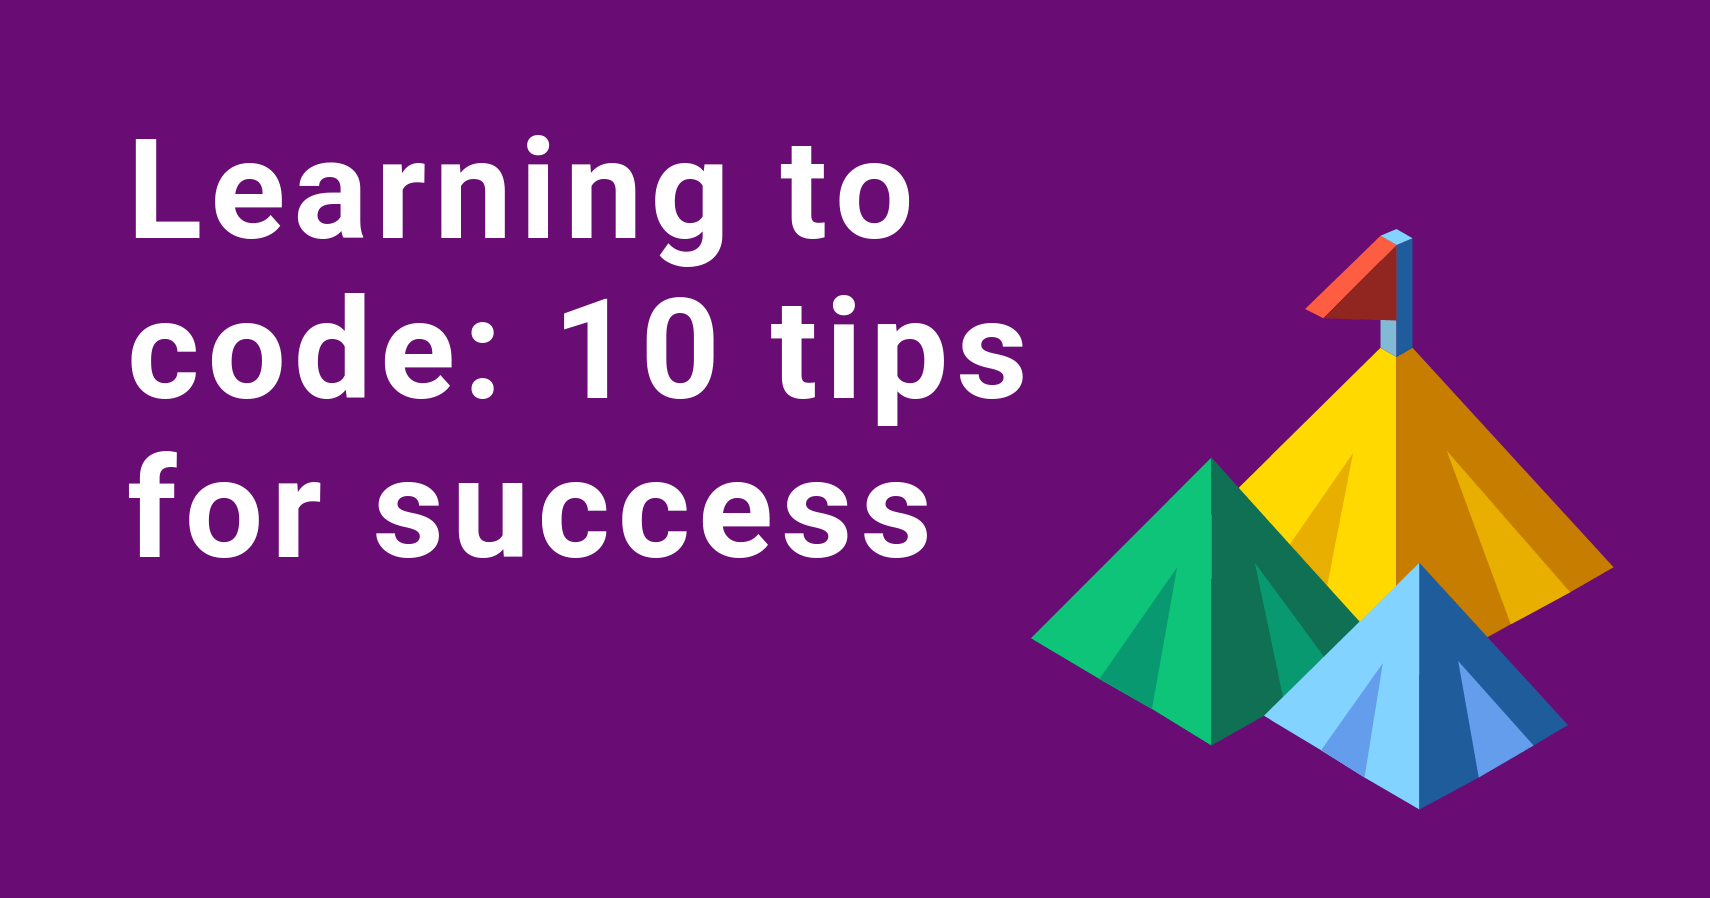 learning to code - 10 tips for success